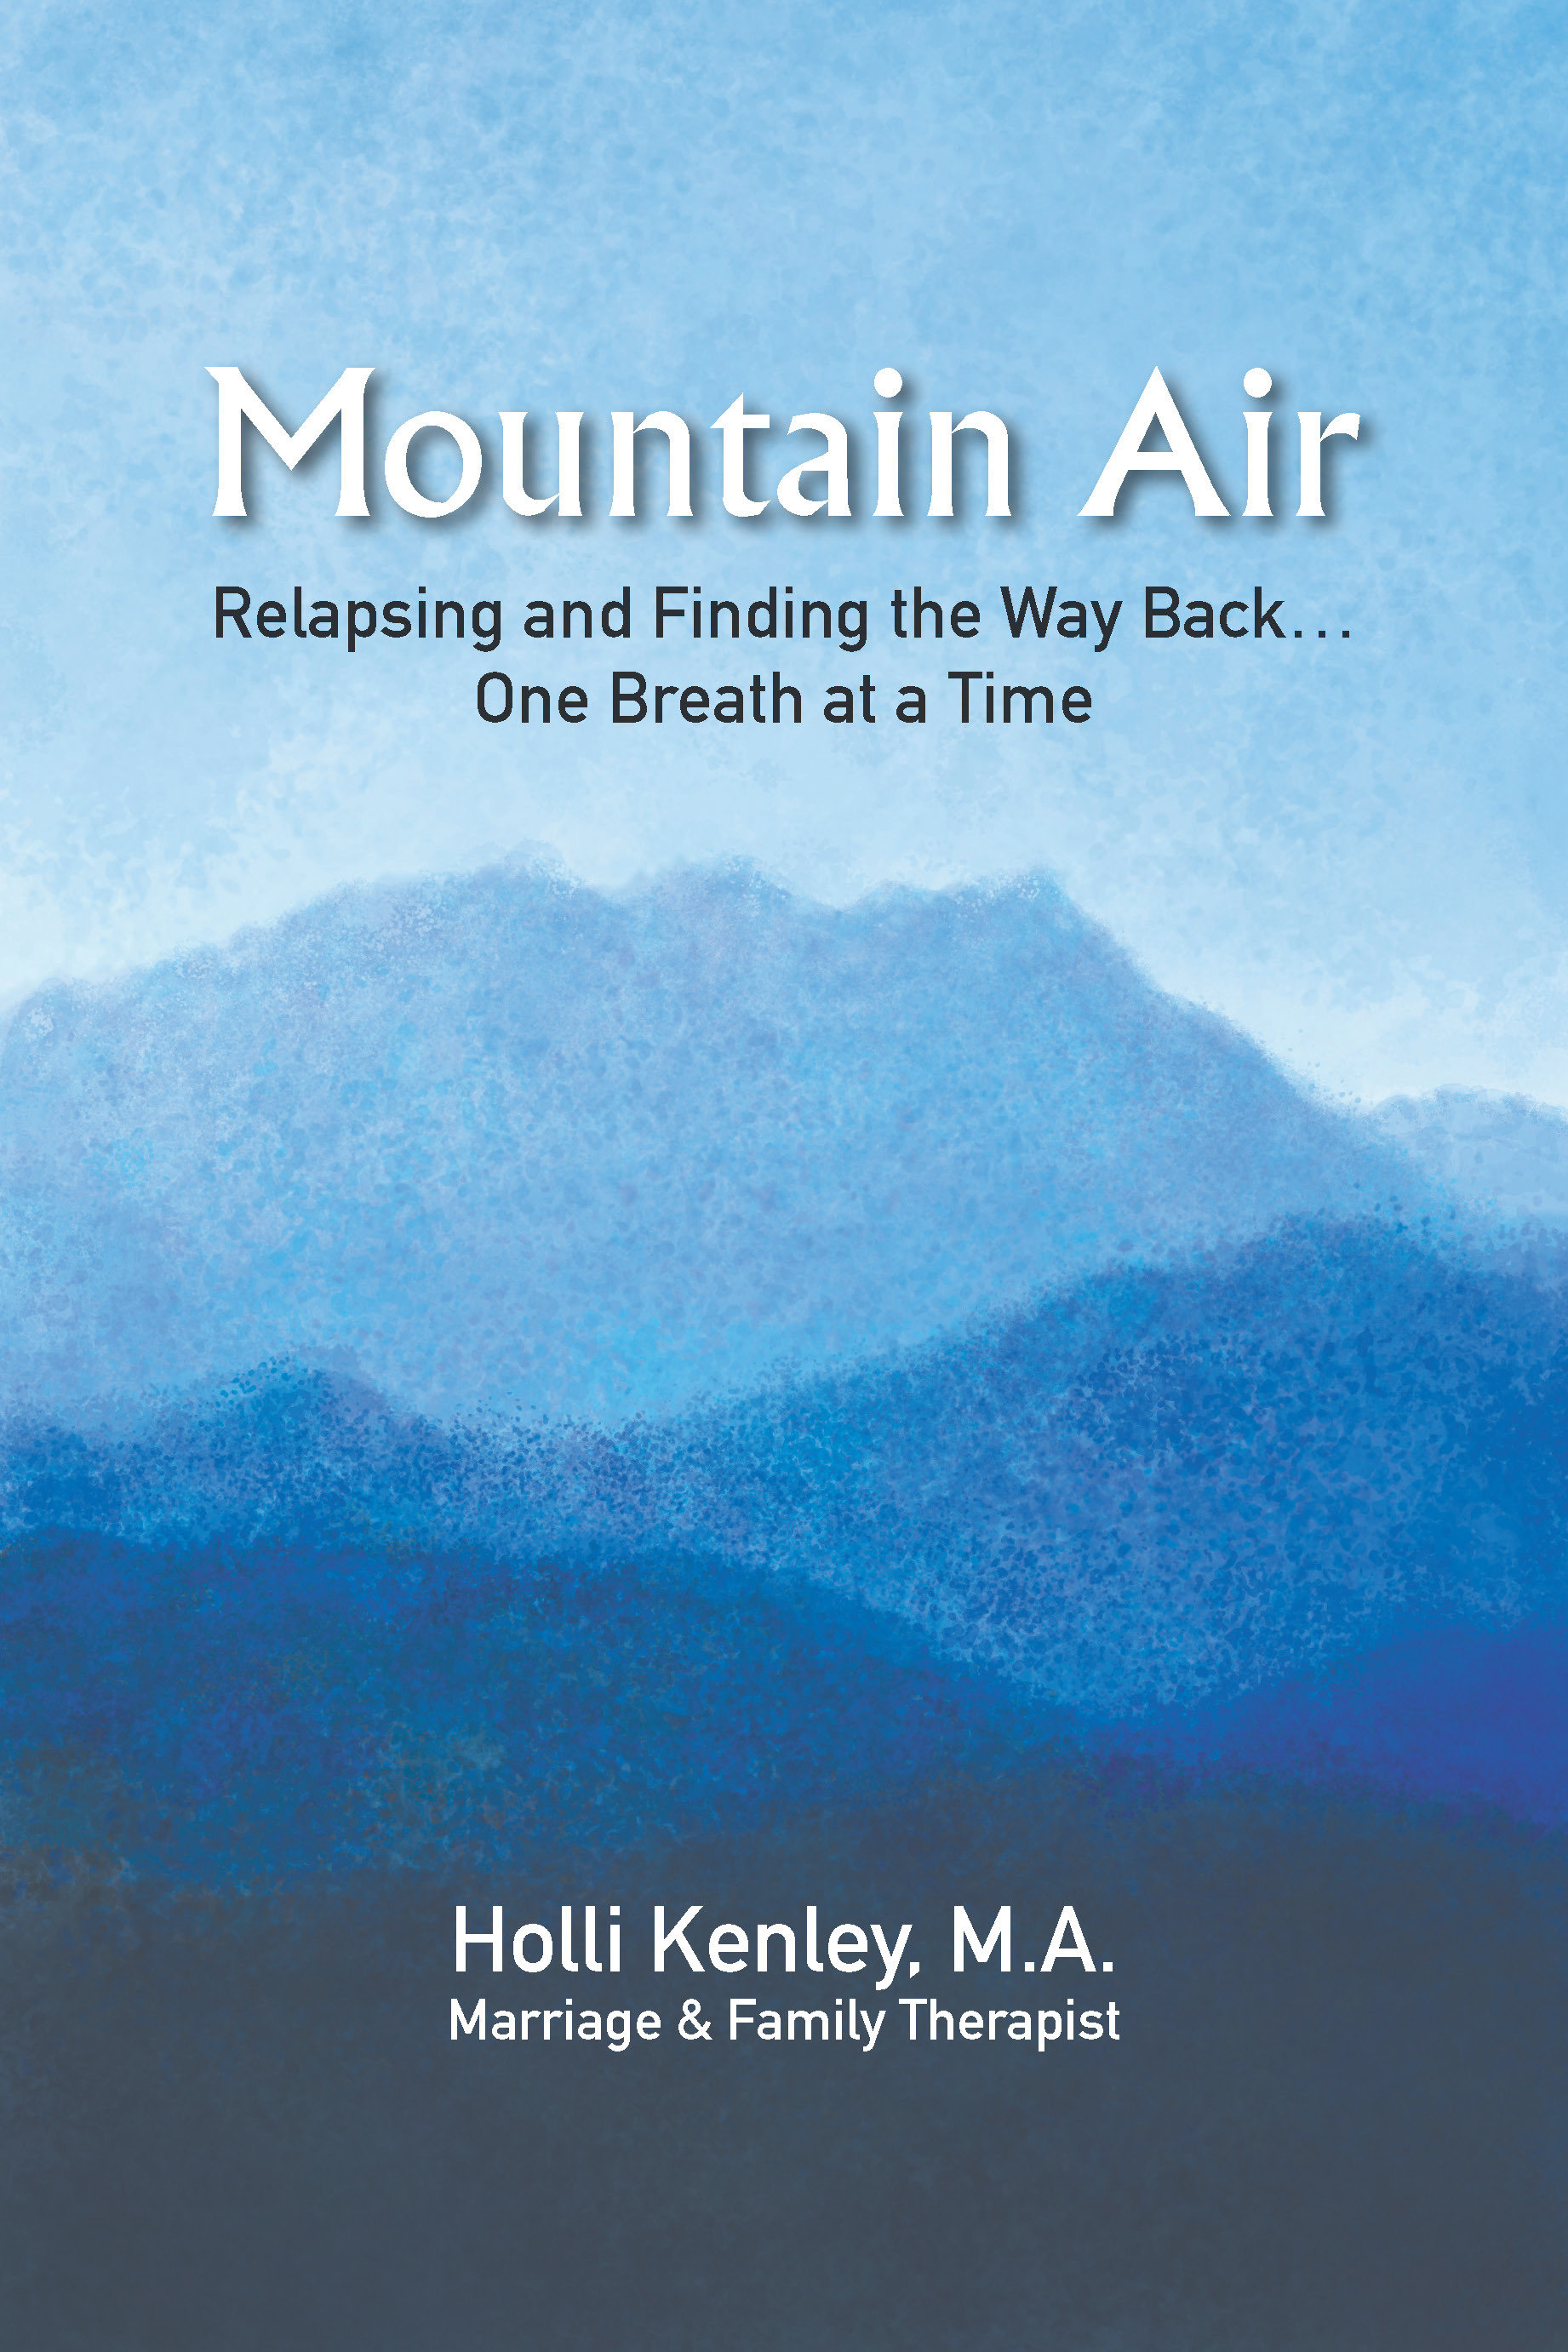 Mountain Air 978-1-61599-188-4